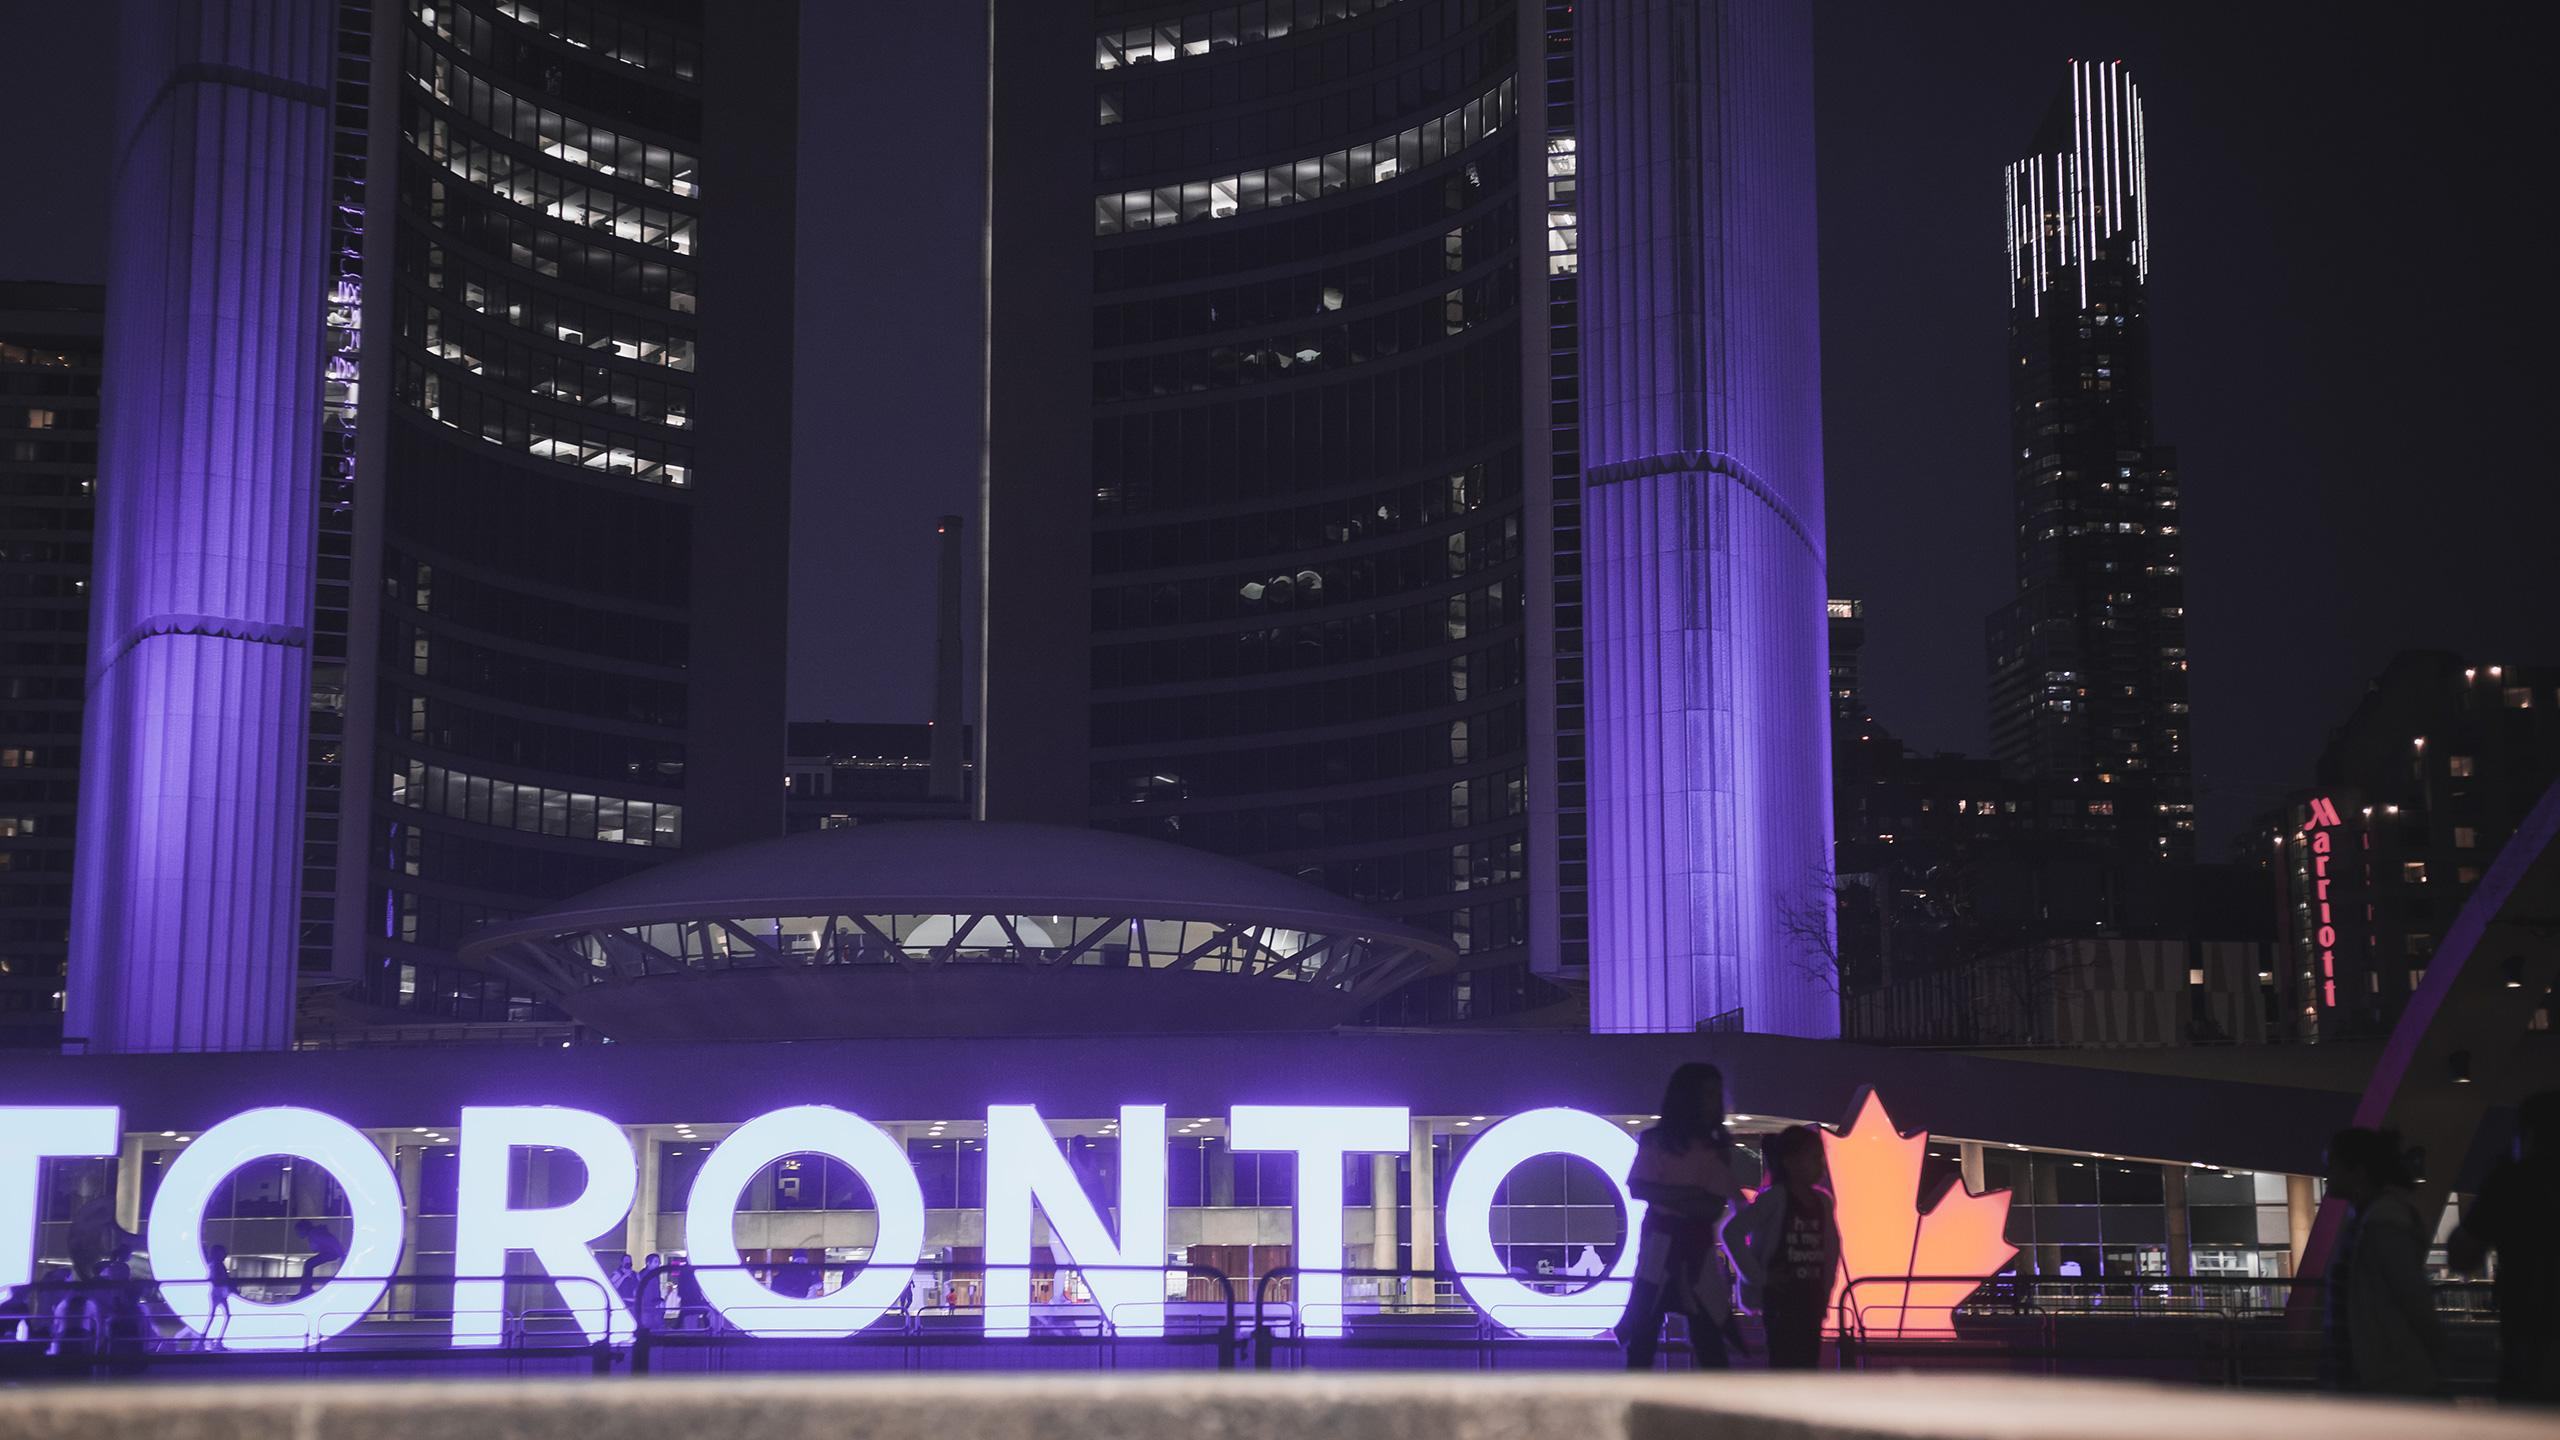 Toronto city hall behind the Toronto sign at night.